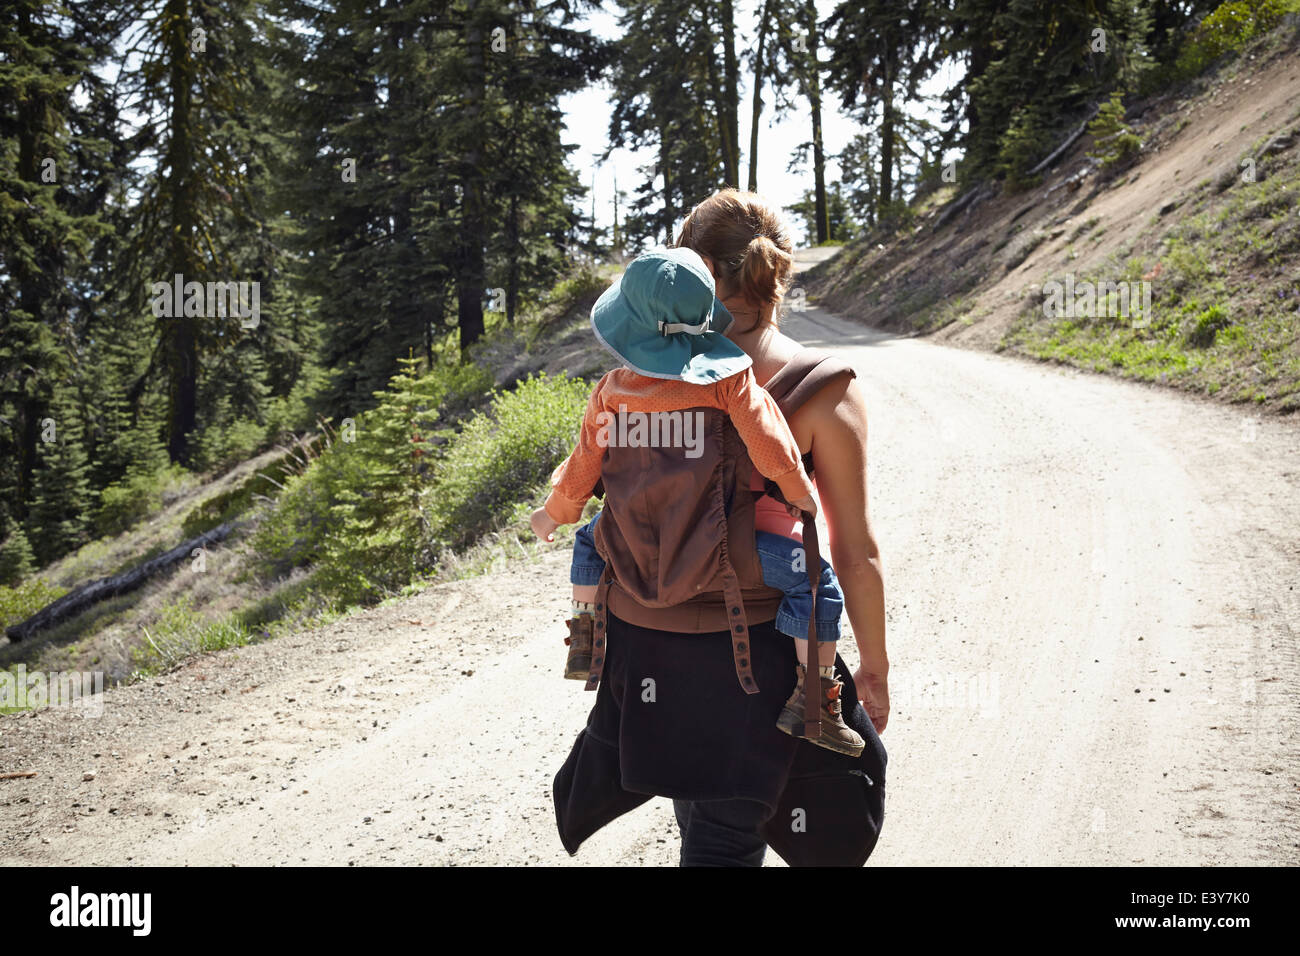 Rear view of mother carrying toddler in baby carrier - Stock Image